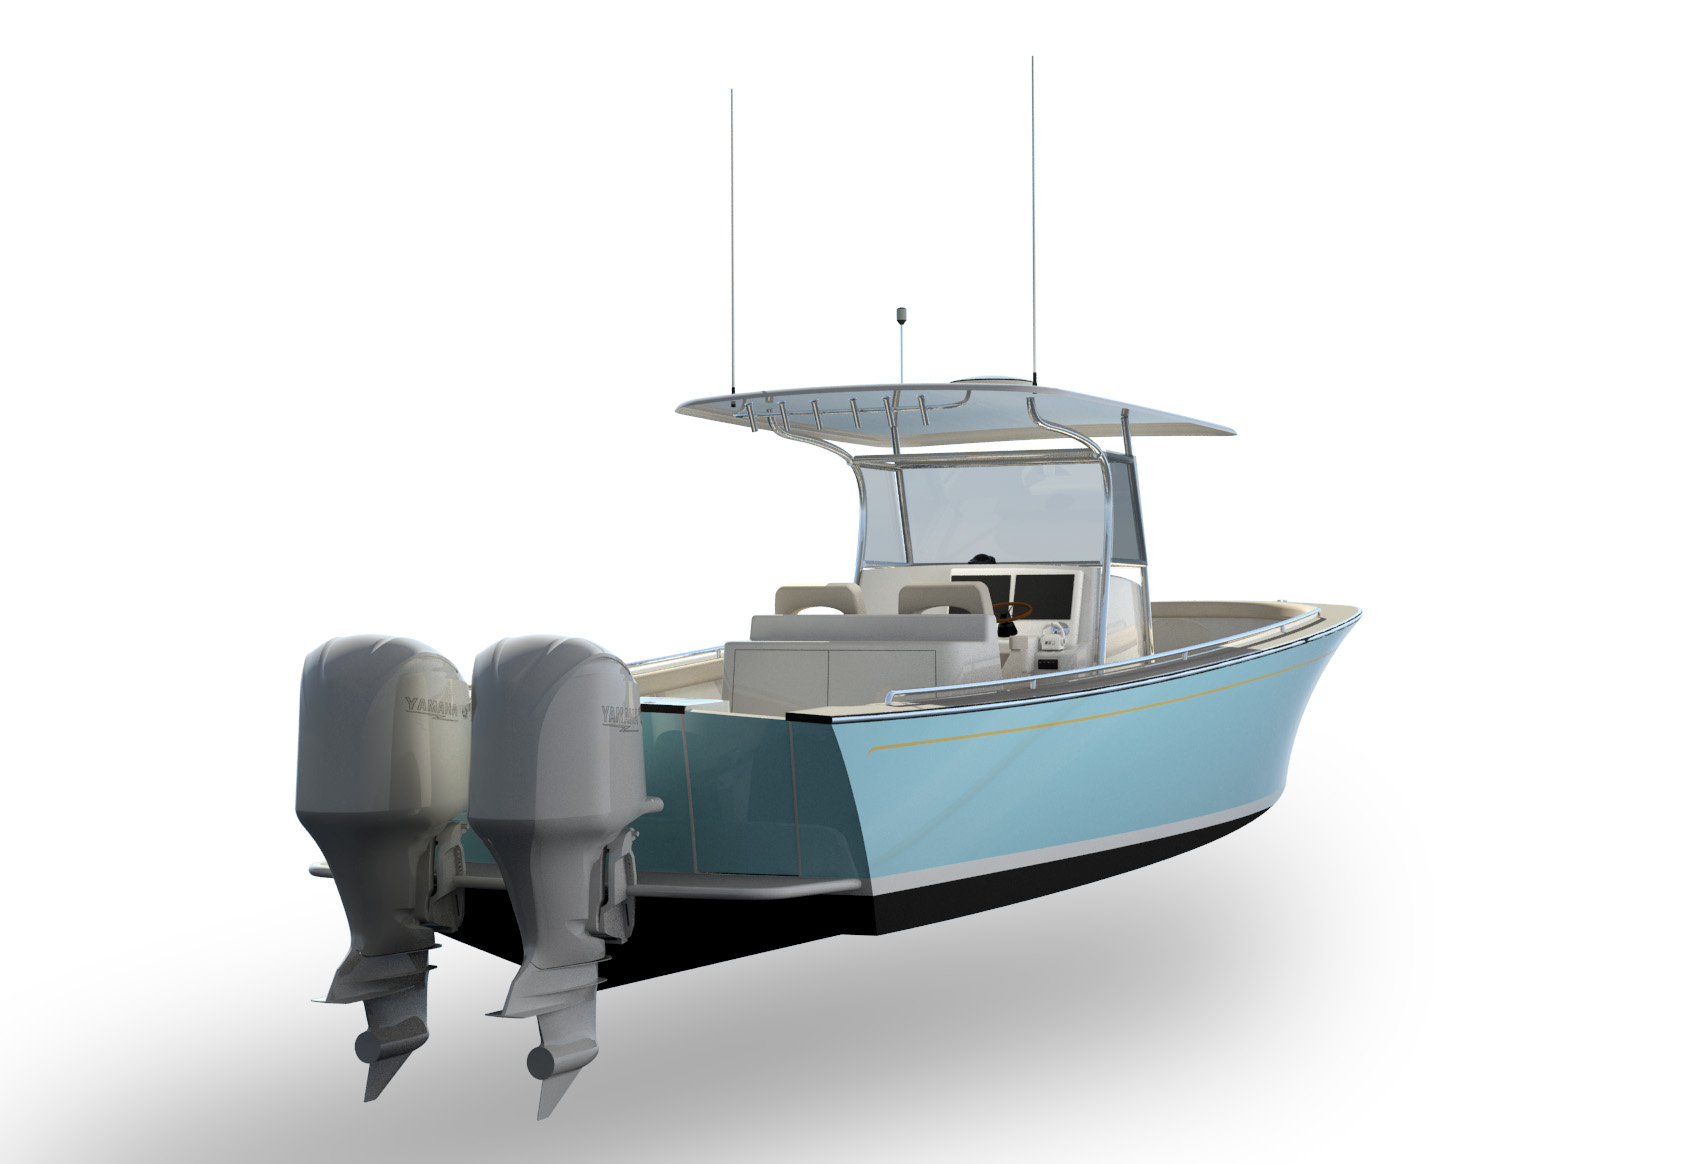 DAF Renderings - 32ft Center Console